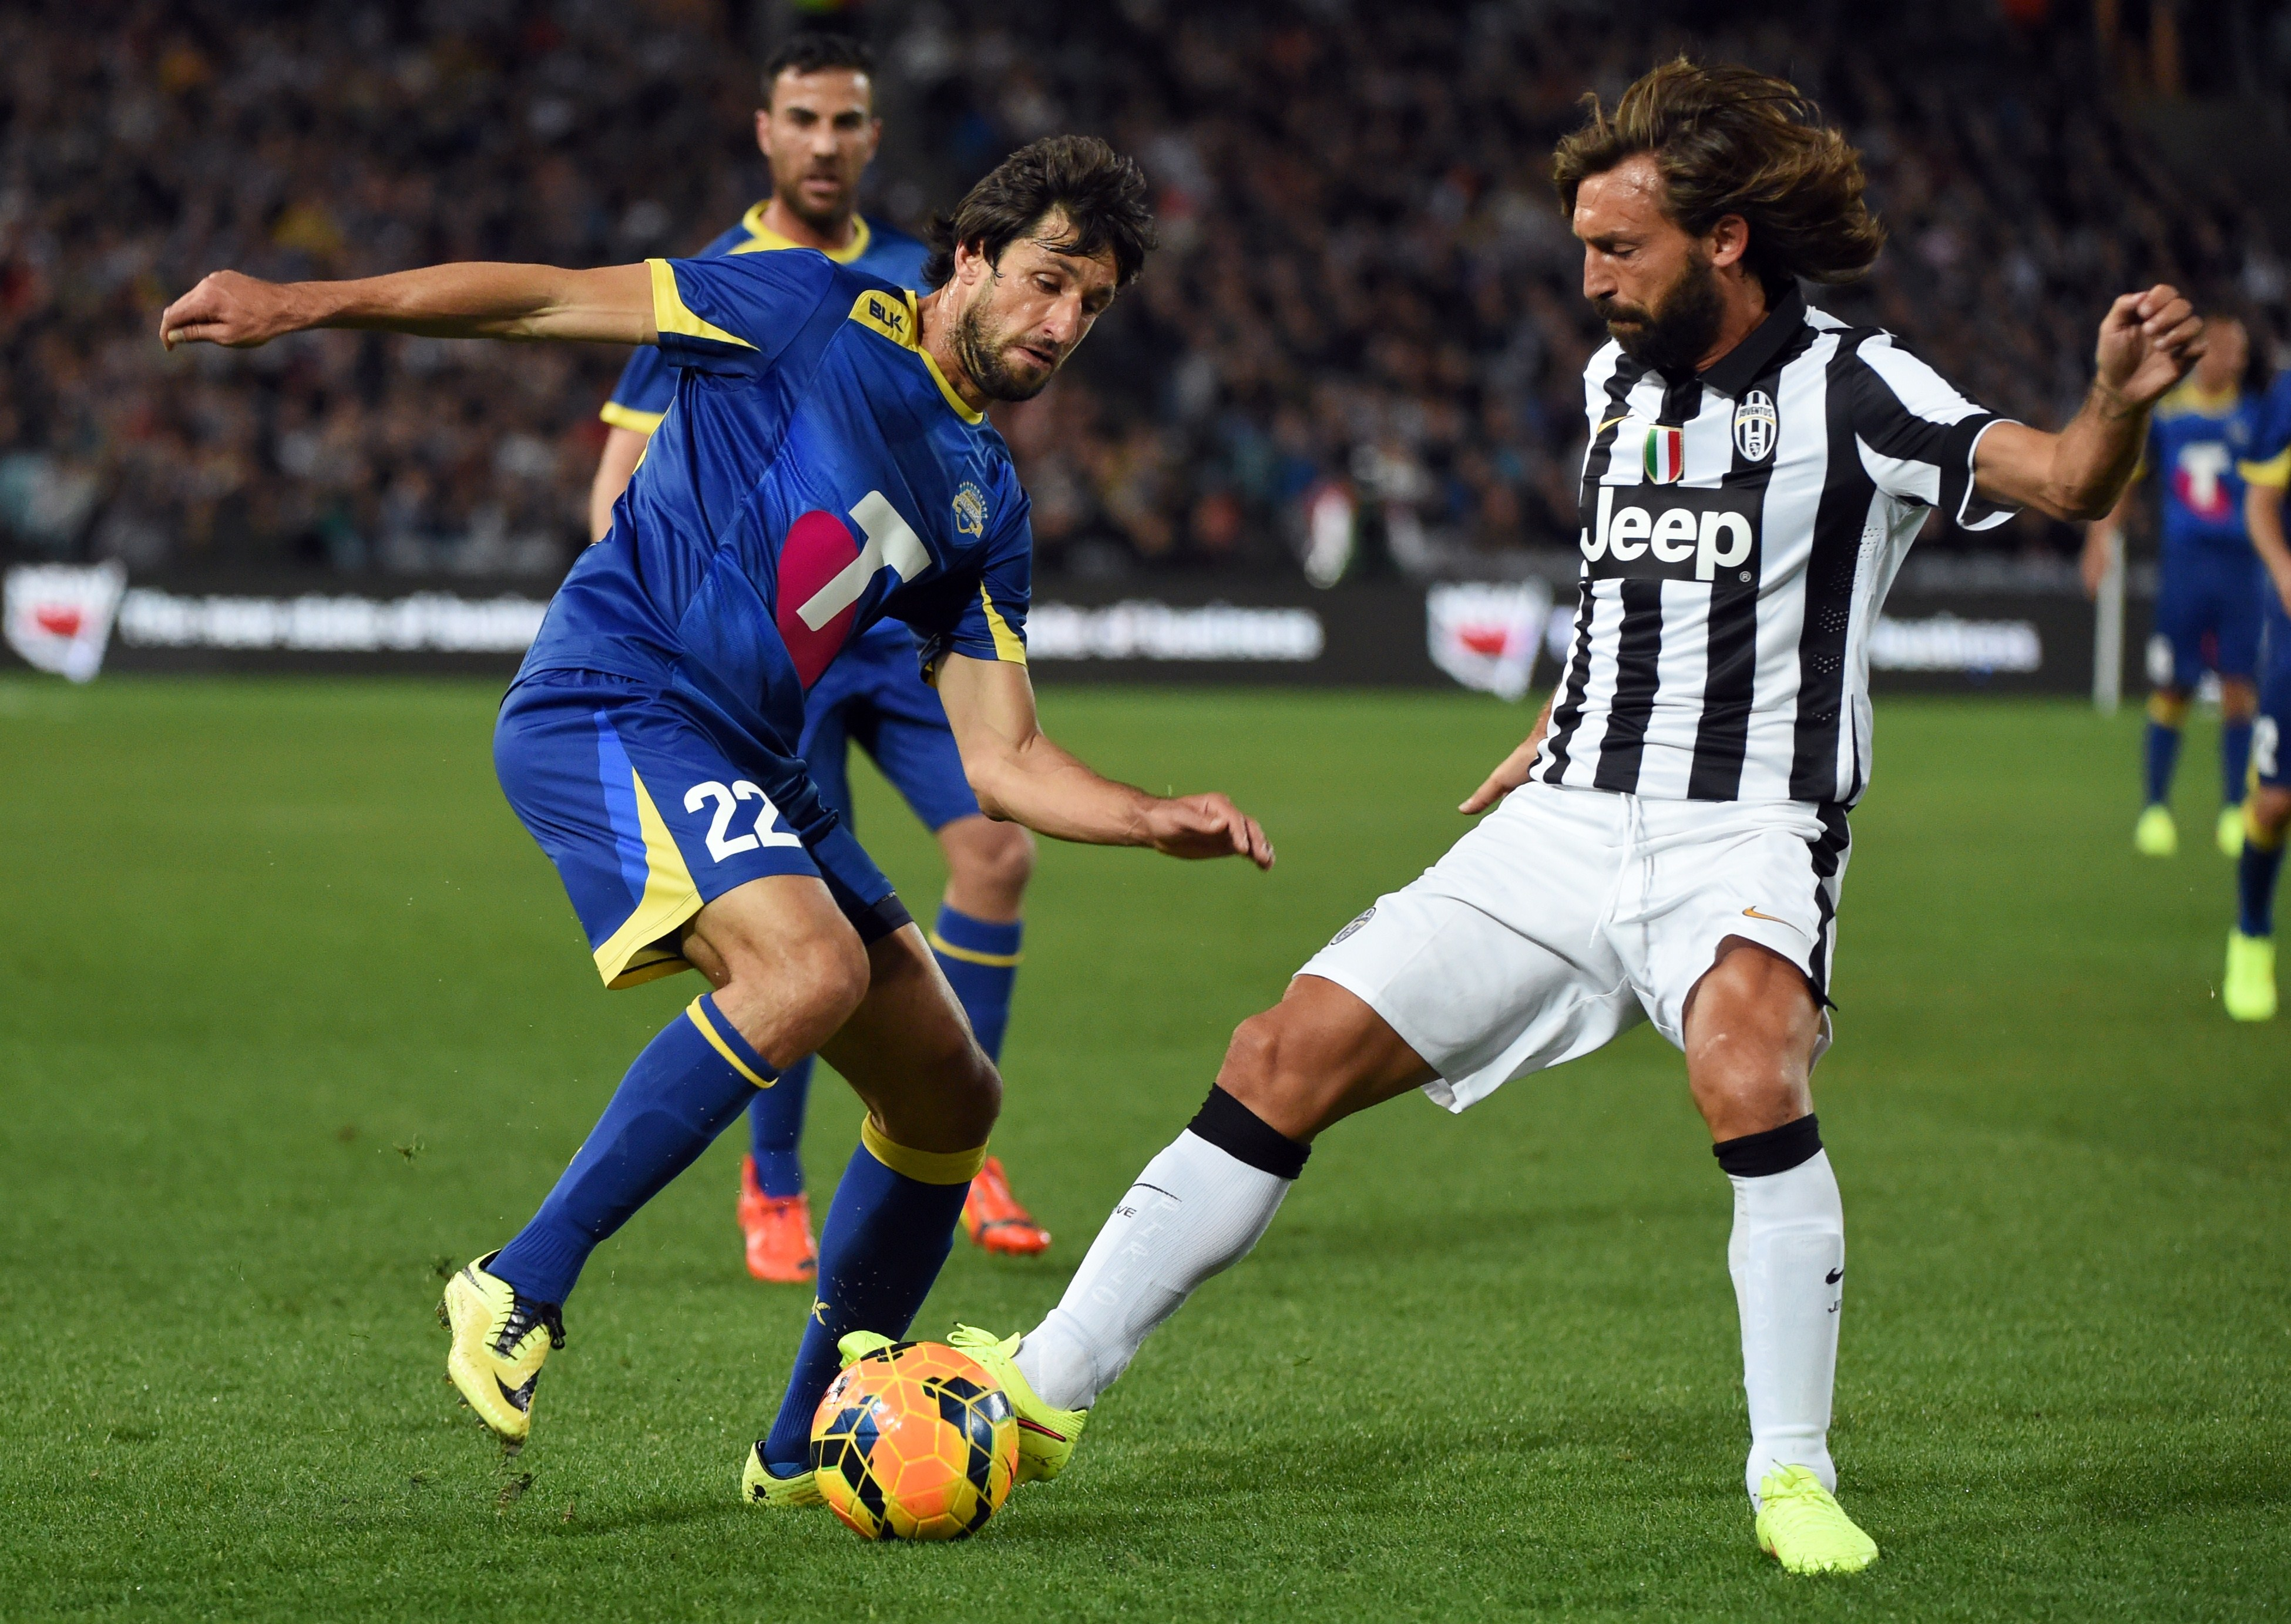 Taking on the might of Italian giants Juventus with the All Stars.